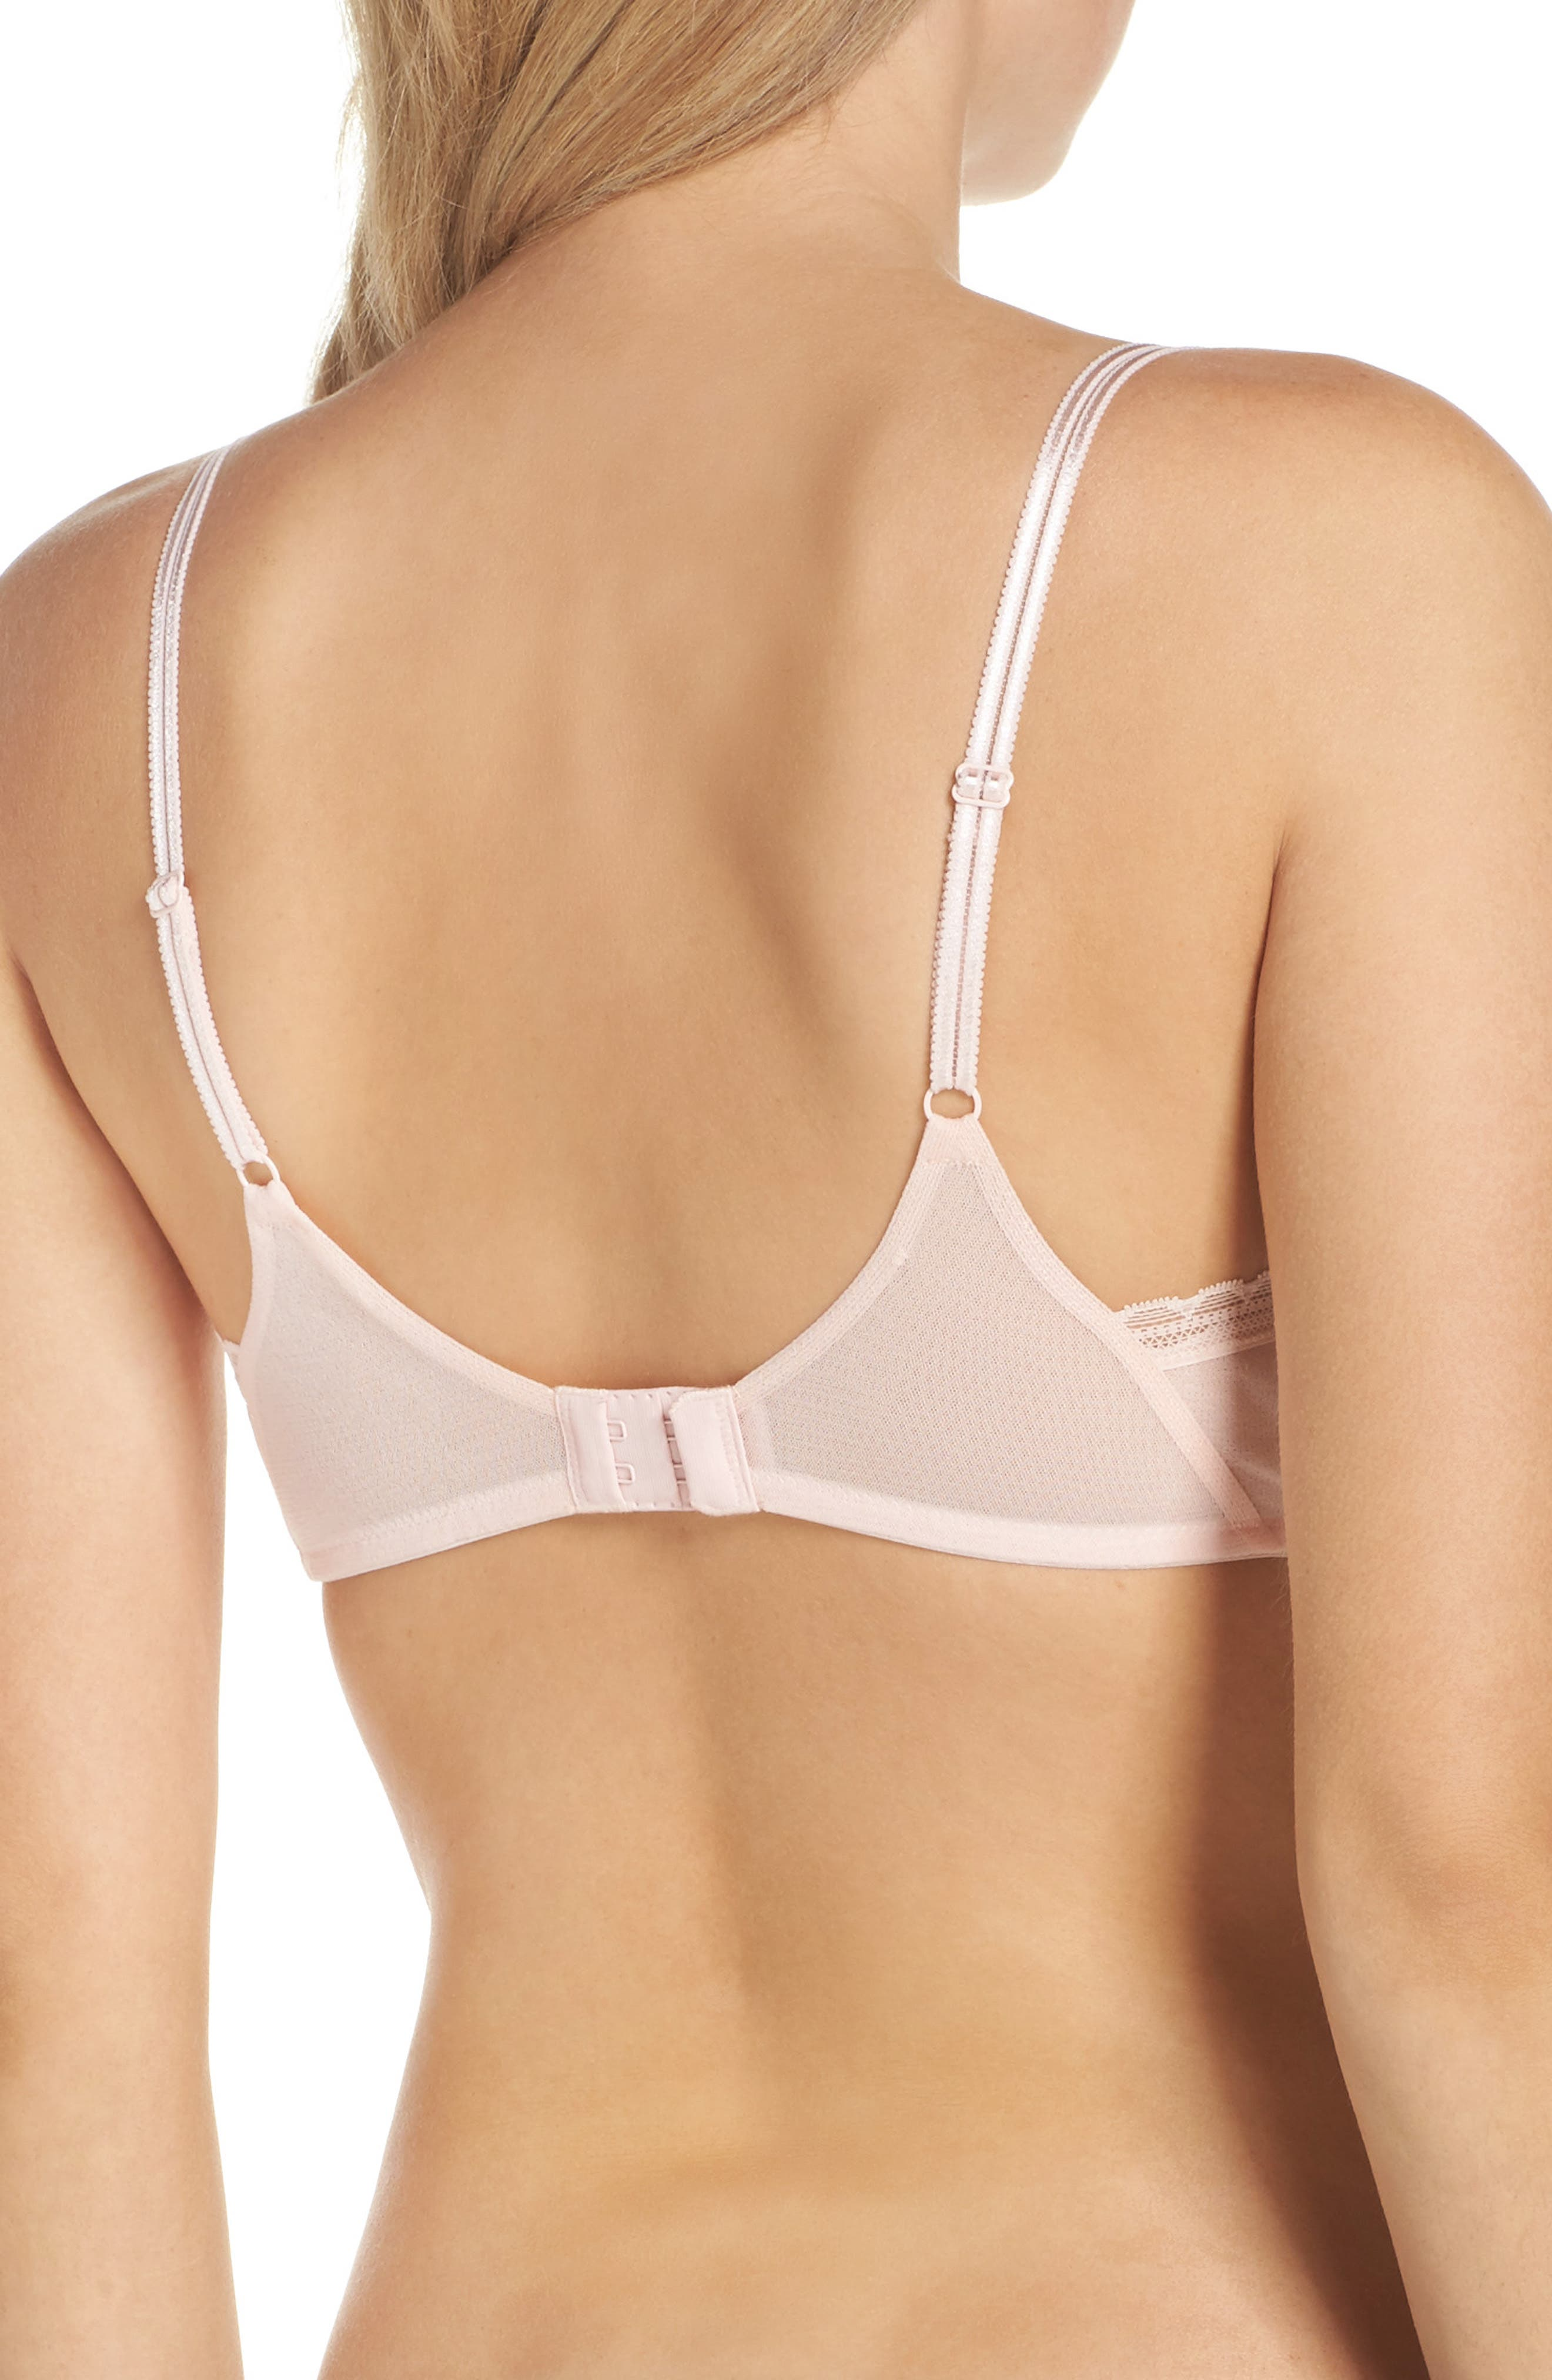 Next to Nothing Underwire Demi Plunge Bra,                             Alternate thumbnail 2, color,                             Blush